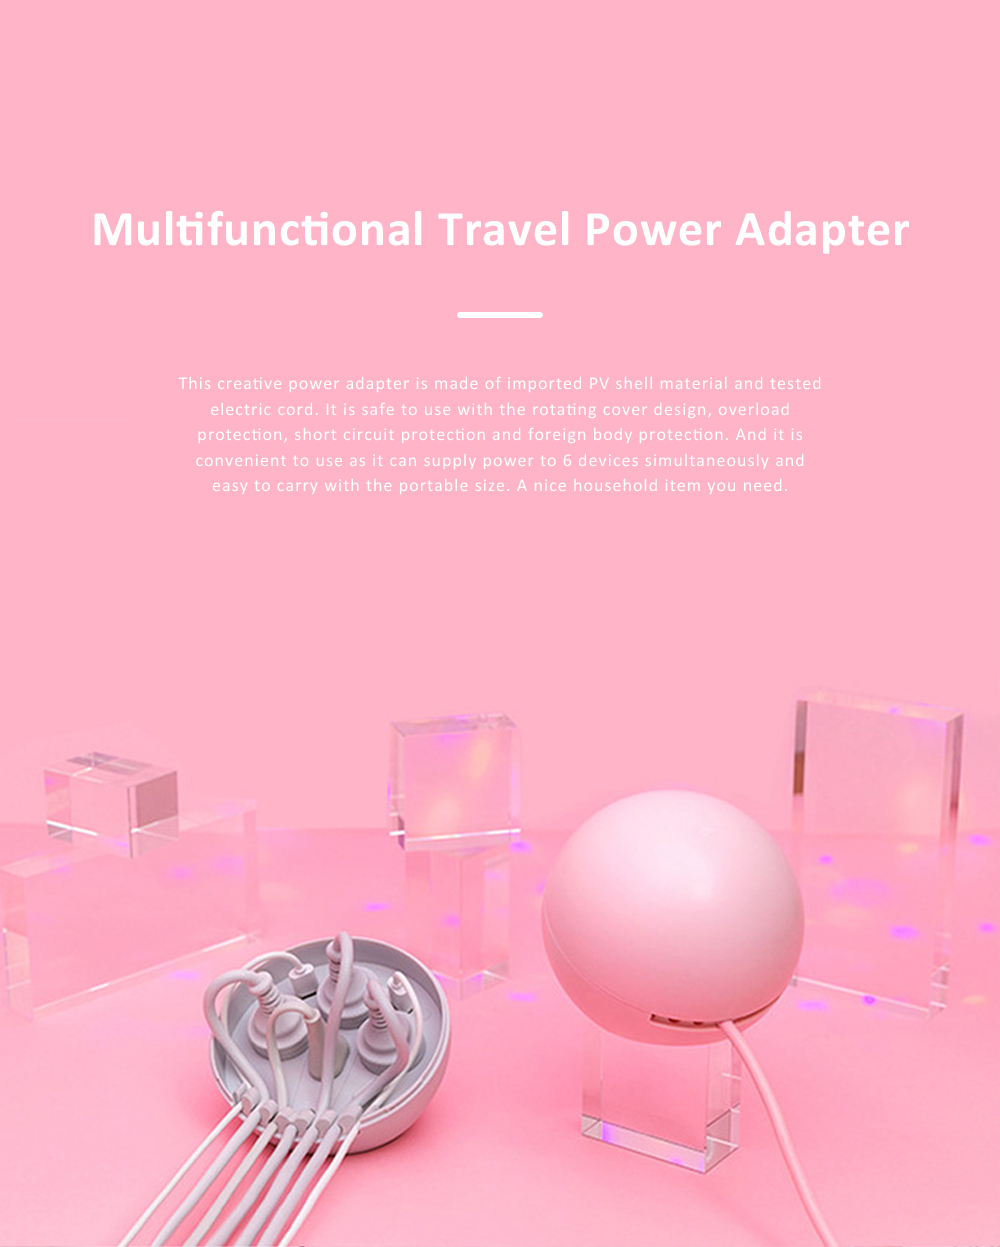 Lollipop Smart Cord Extension Set with Power Adapter 4 Sockets 2 USB Ports Multifunctional Travel Charger Travel Socket 0